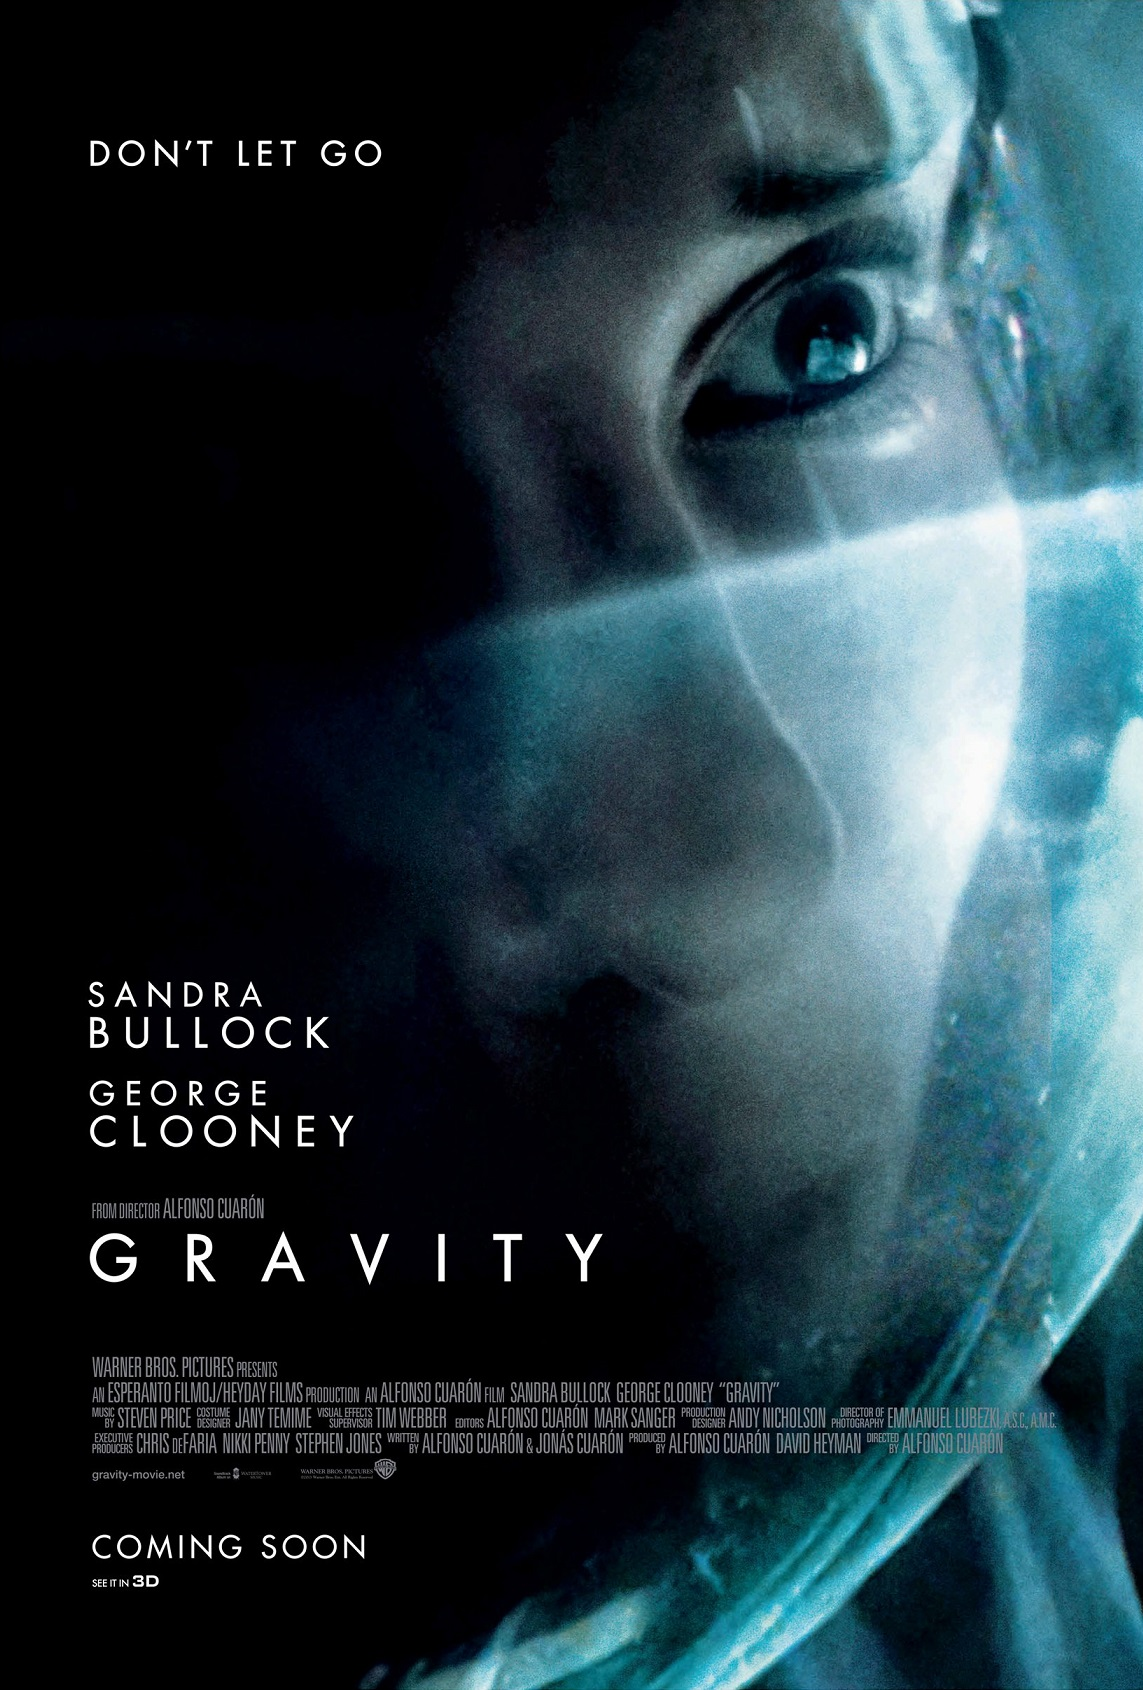 Gravity-Official Poster Banner PROMO CHAR-02SETEMBRO2013-01-01